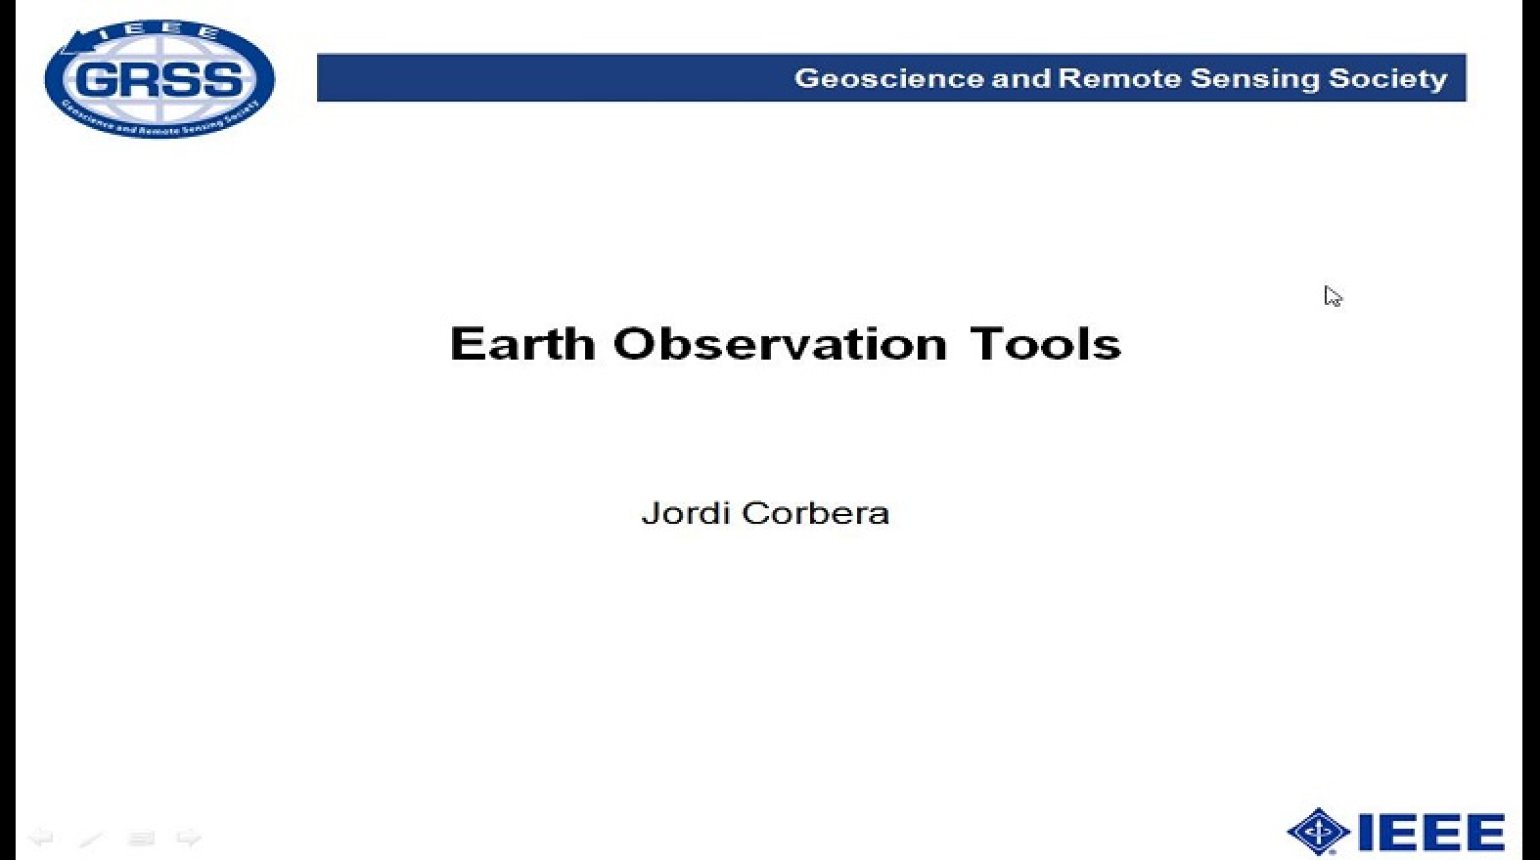 Earth Observation Tools